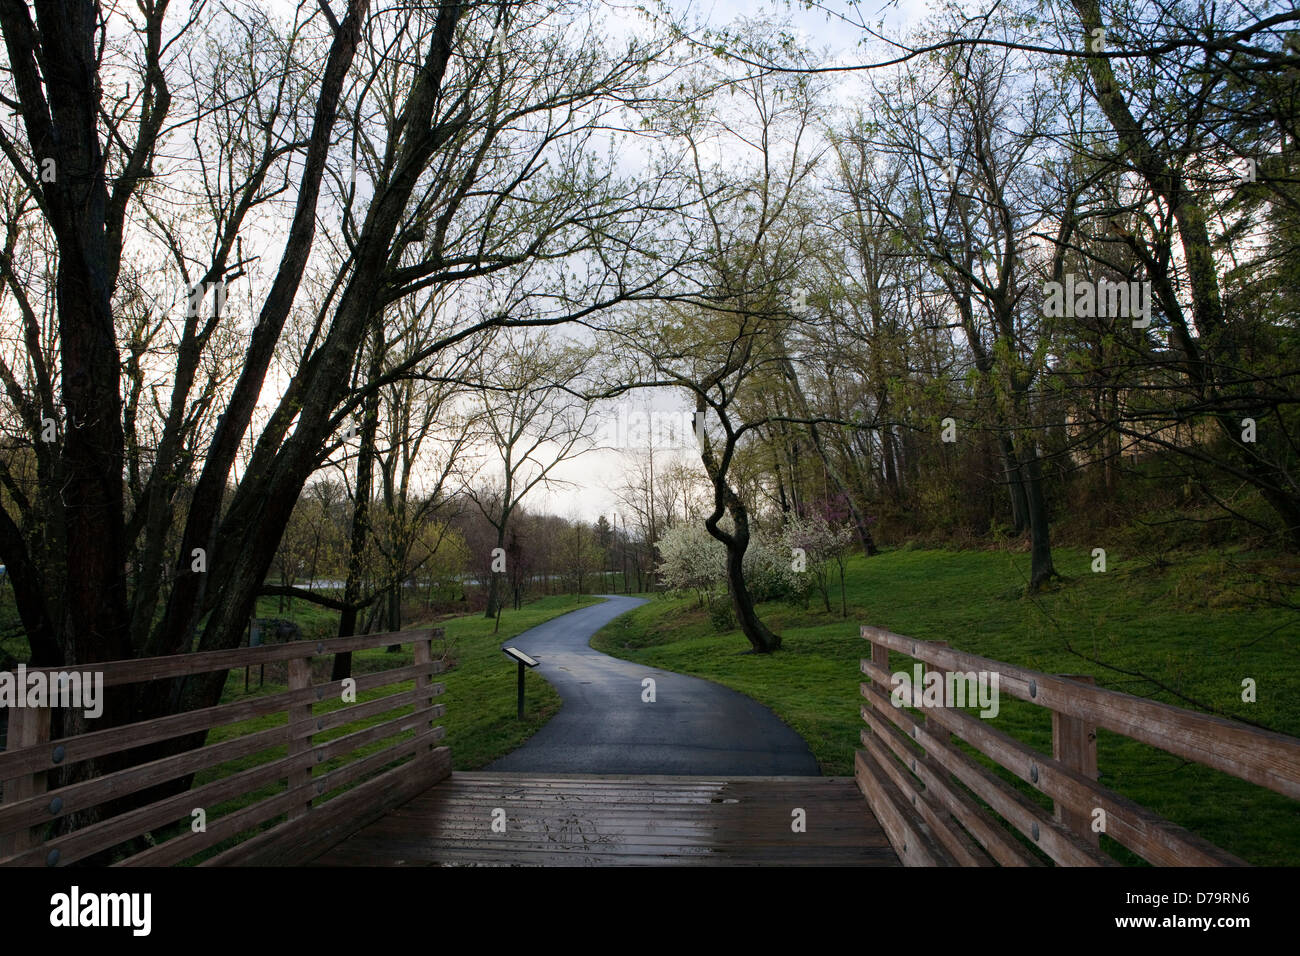 A view of the Reed Creek Greenway in Asheville in North Carolina - Stock Image